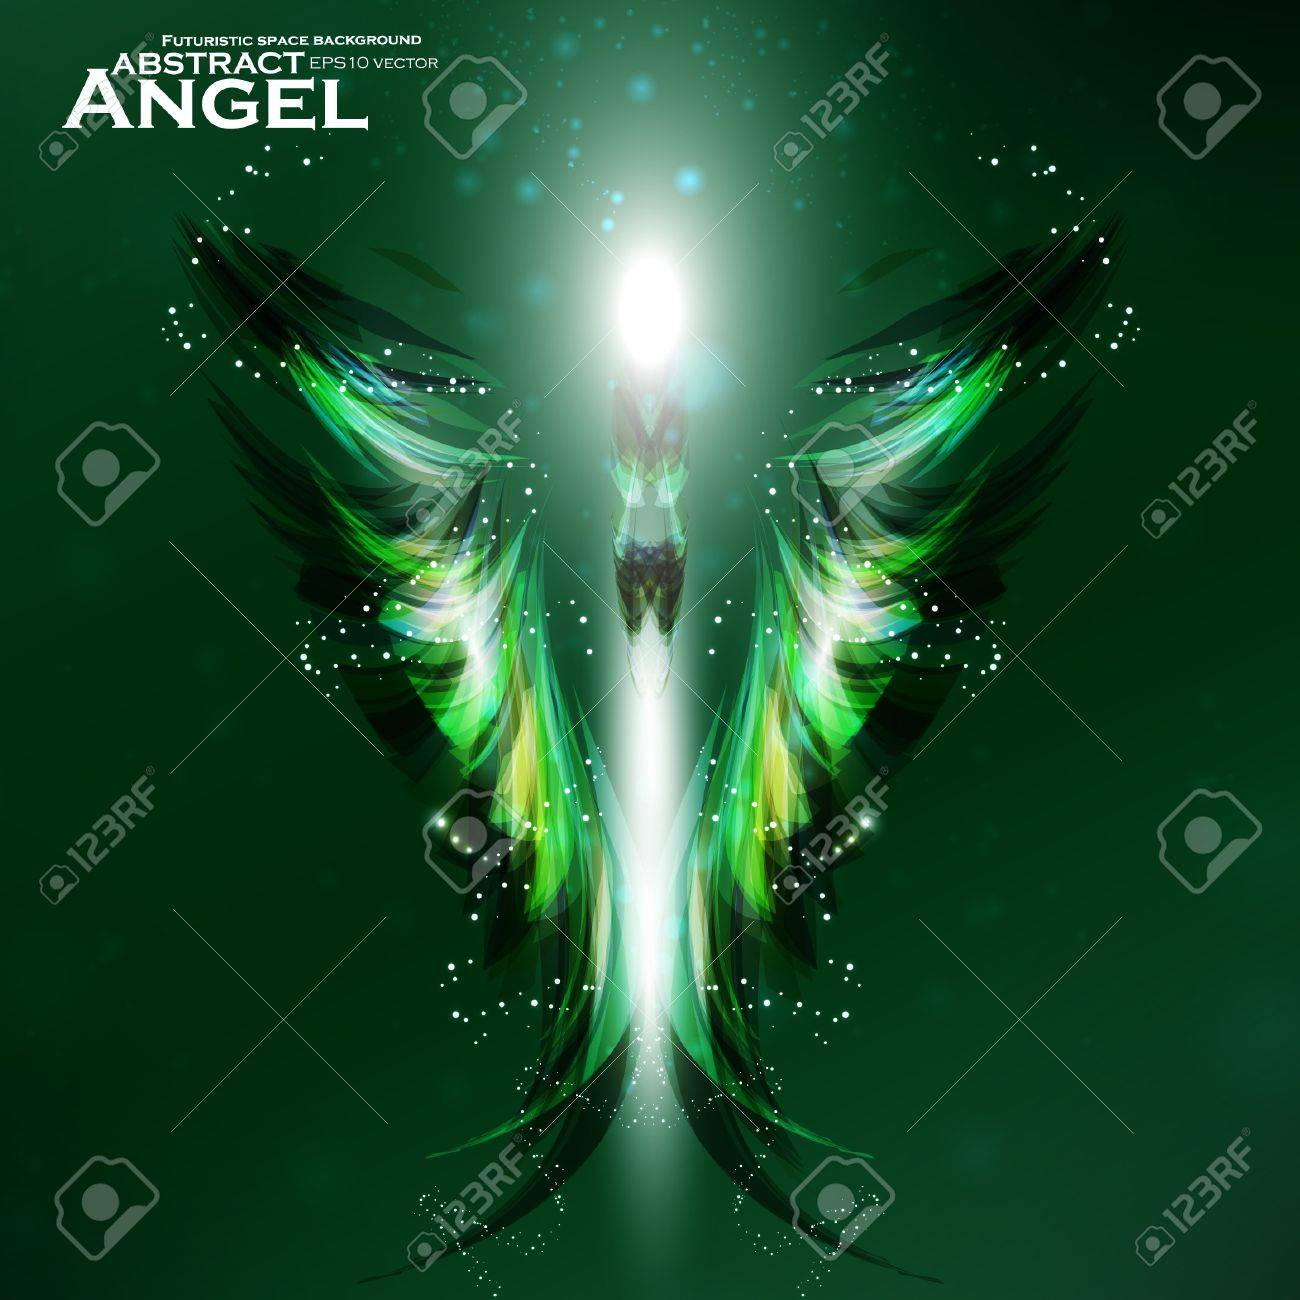 Angel vector futuristic background, wing illustration eps10 Stock Vector - 12084413